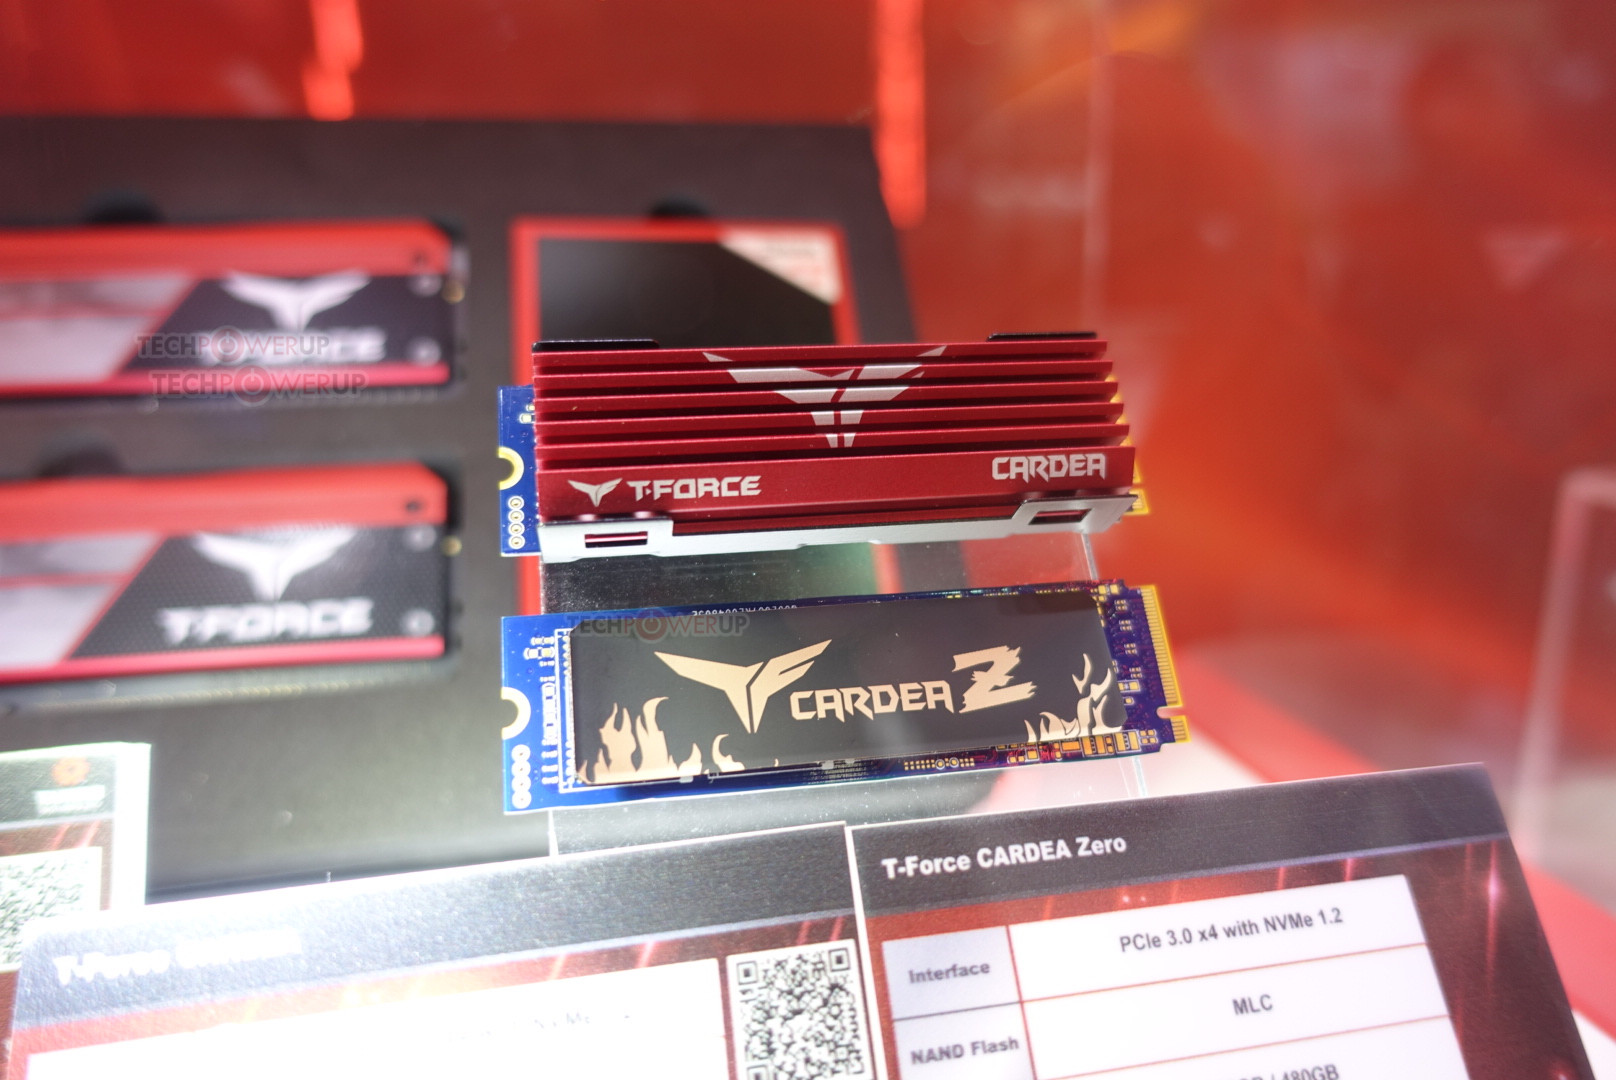 Team Group showcase their new Cardea-Z series of NVMe SSDs